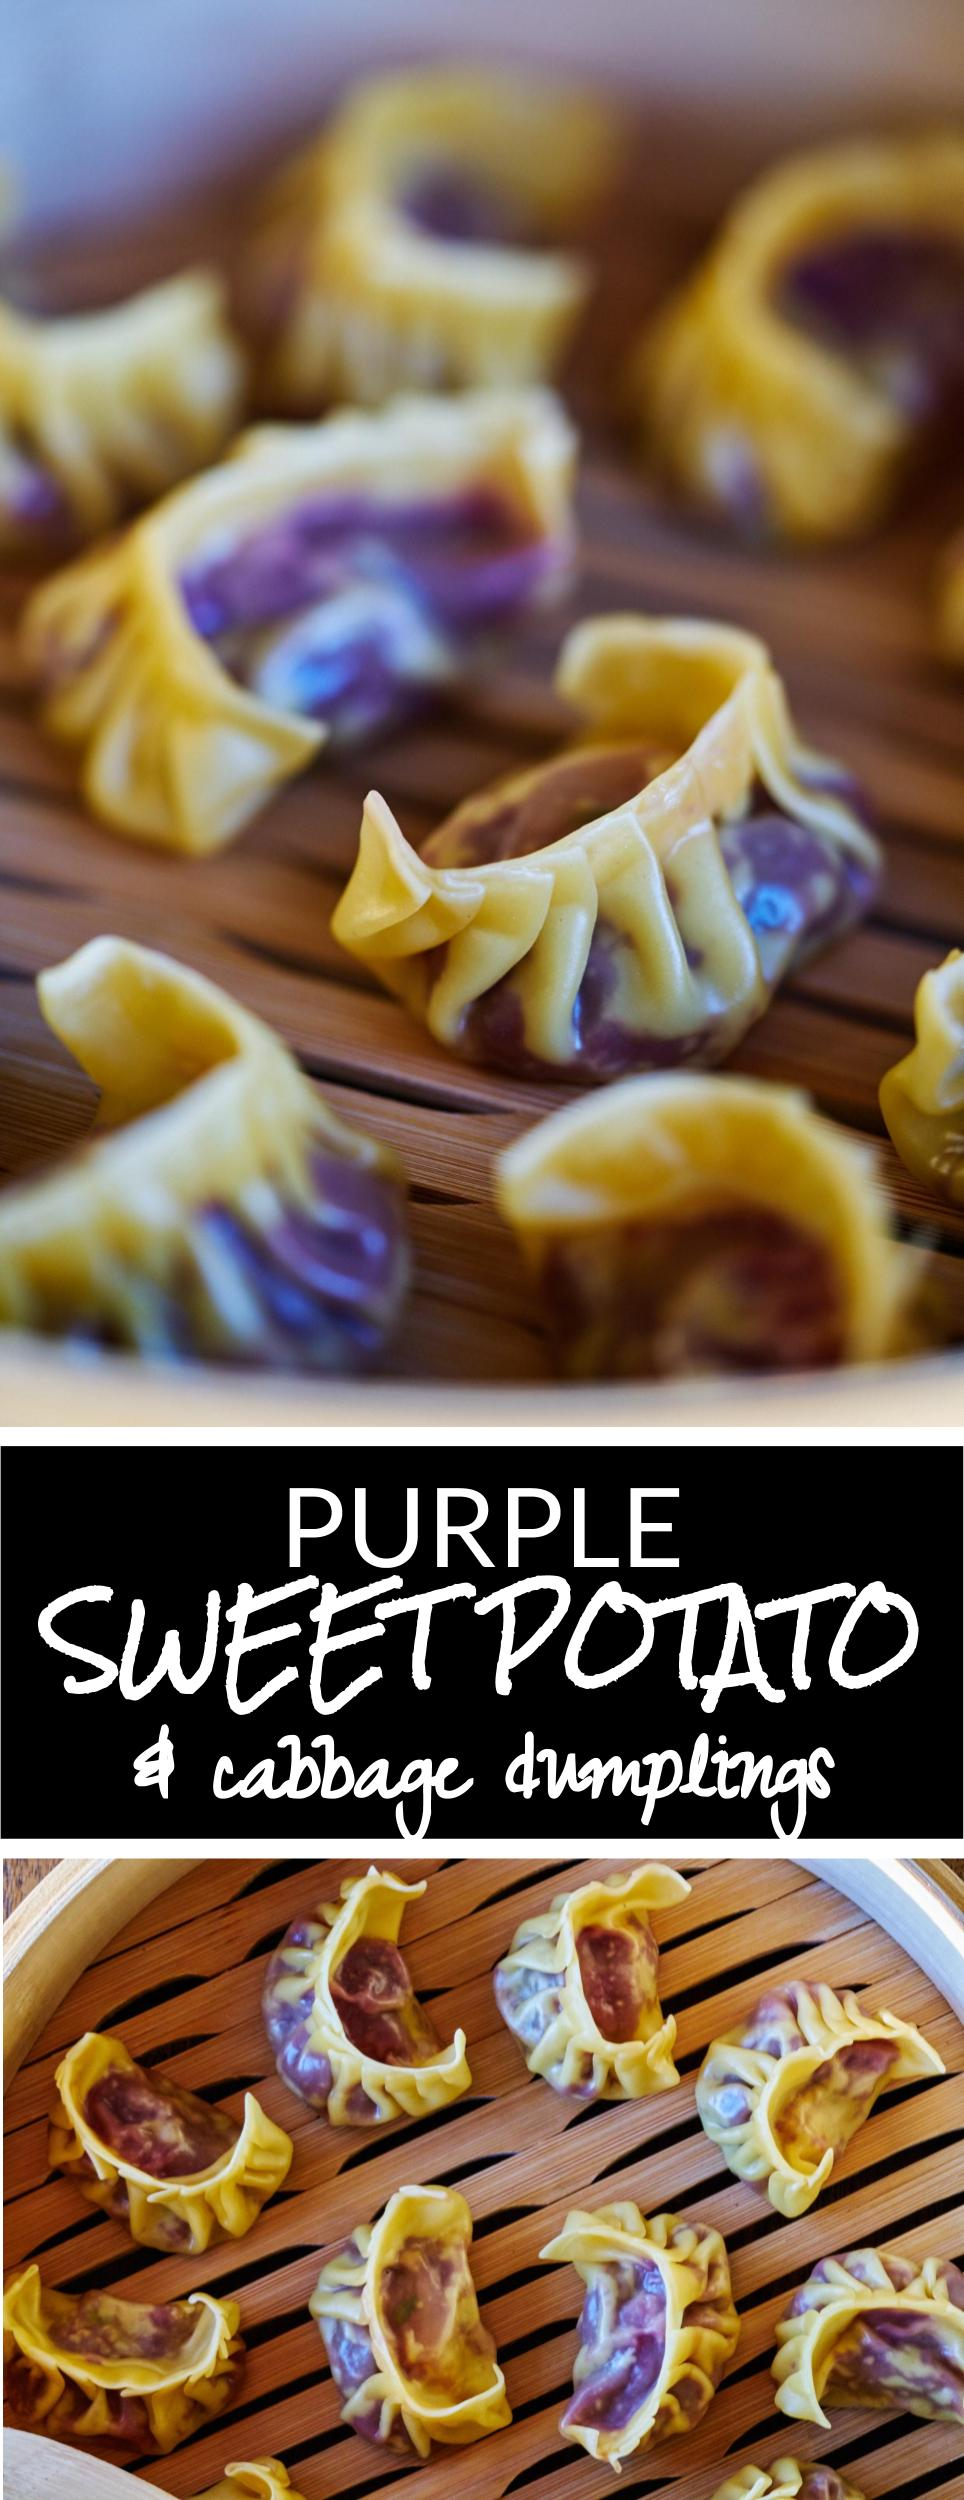 Purple Sweet Potato & Cabbage Dumplings | Proportional Plate #vegan